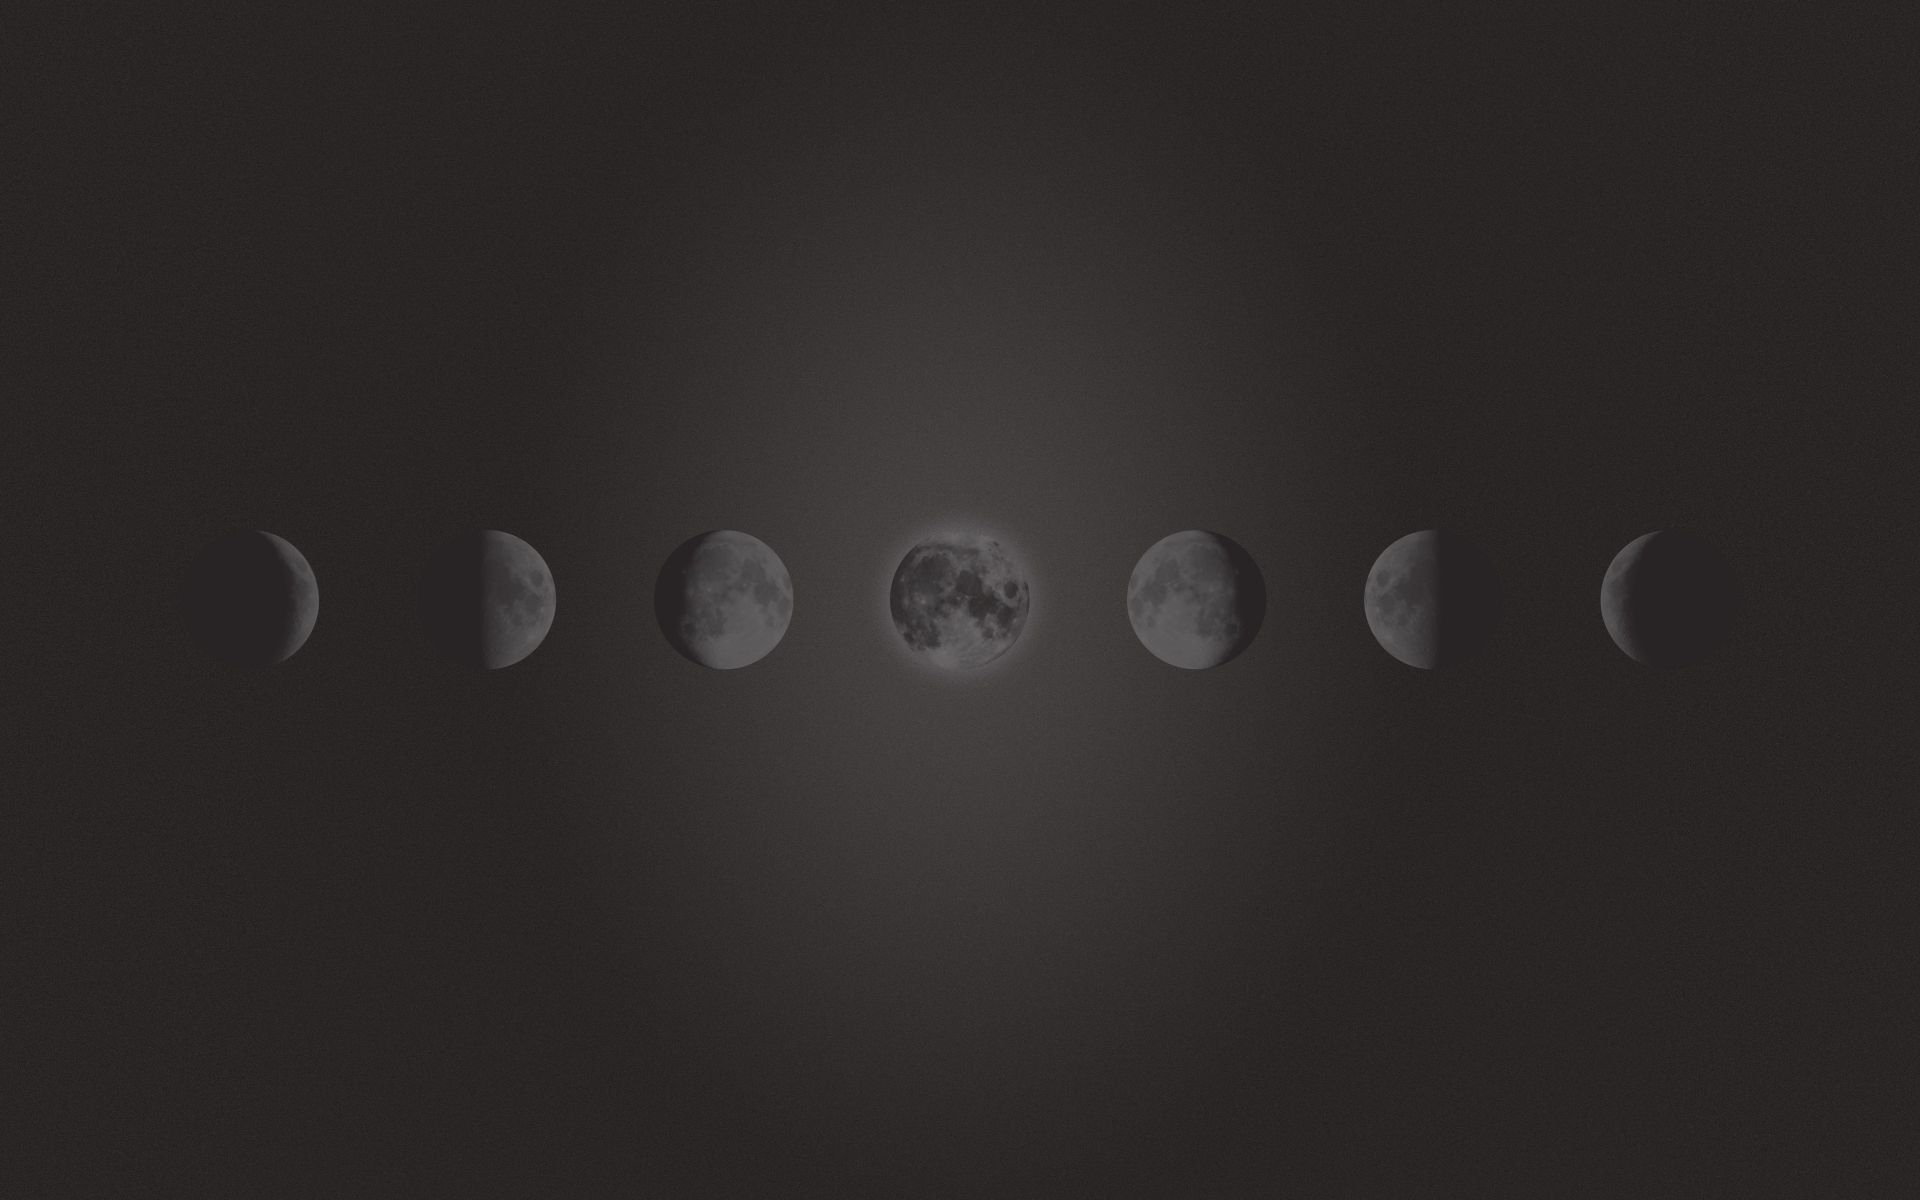 Moon Phases Desktop Wallpaper